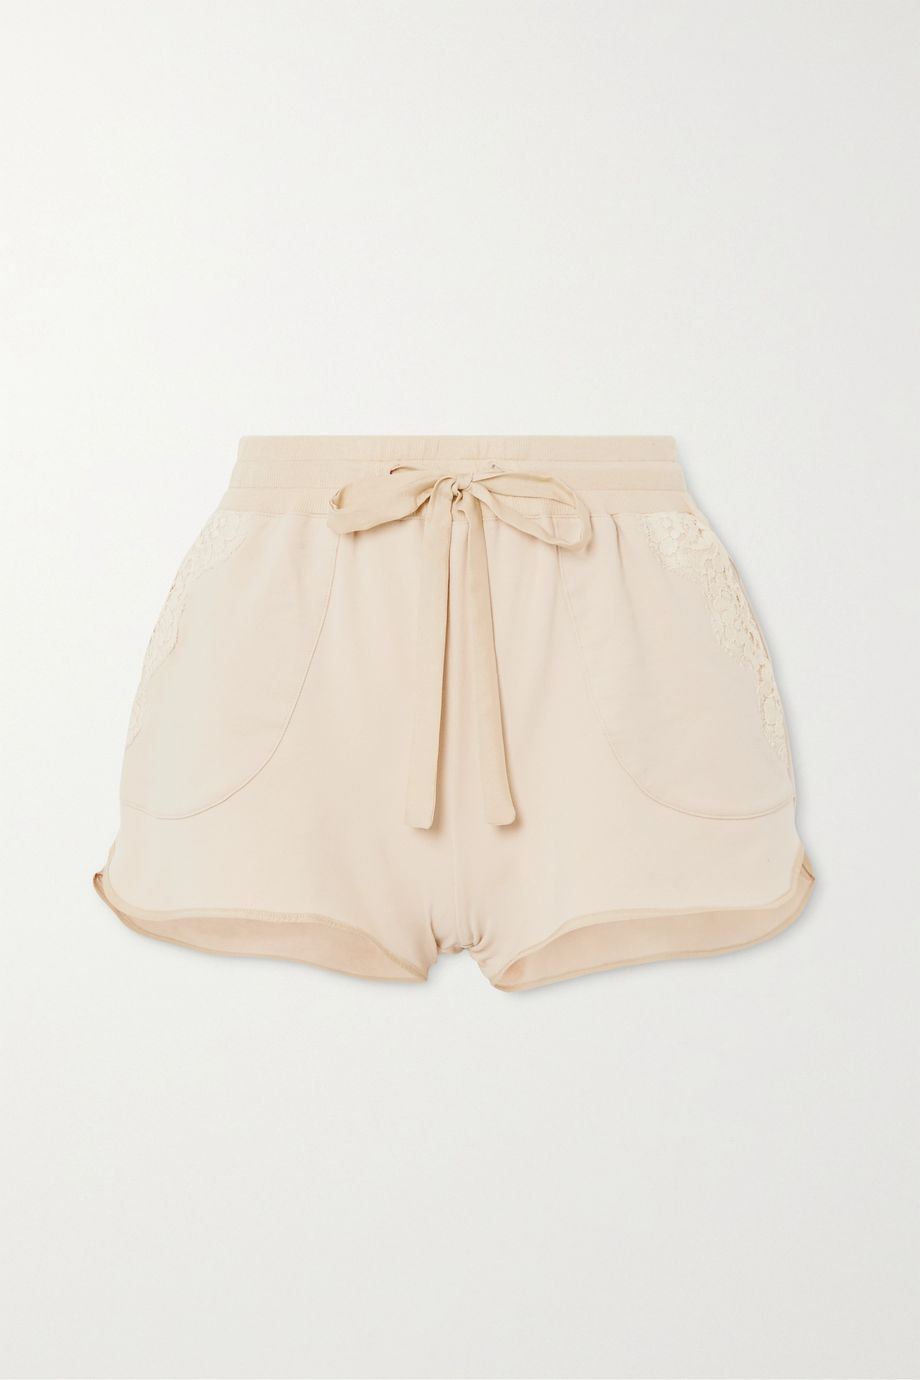 I.D. Sarrieri Lace-trimmed cotton-blend jersey shorts